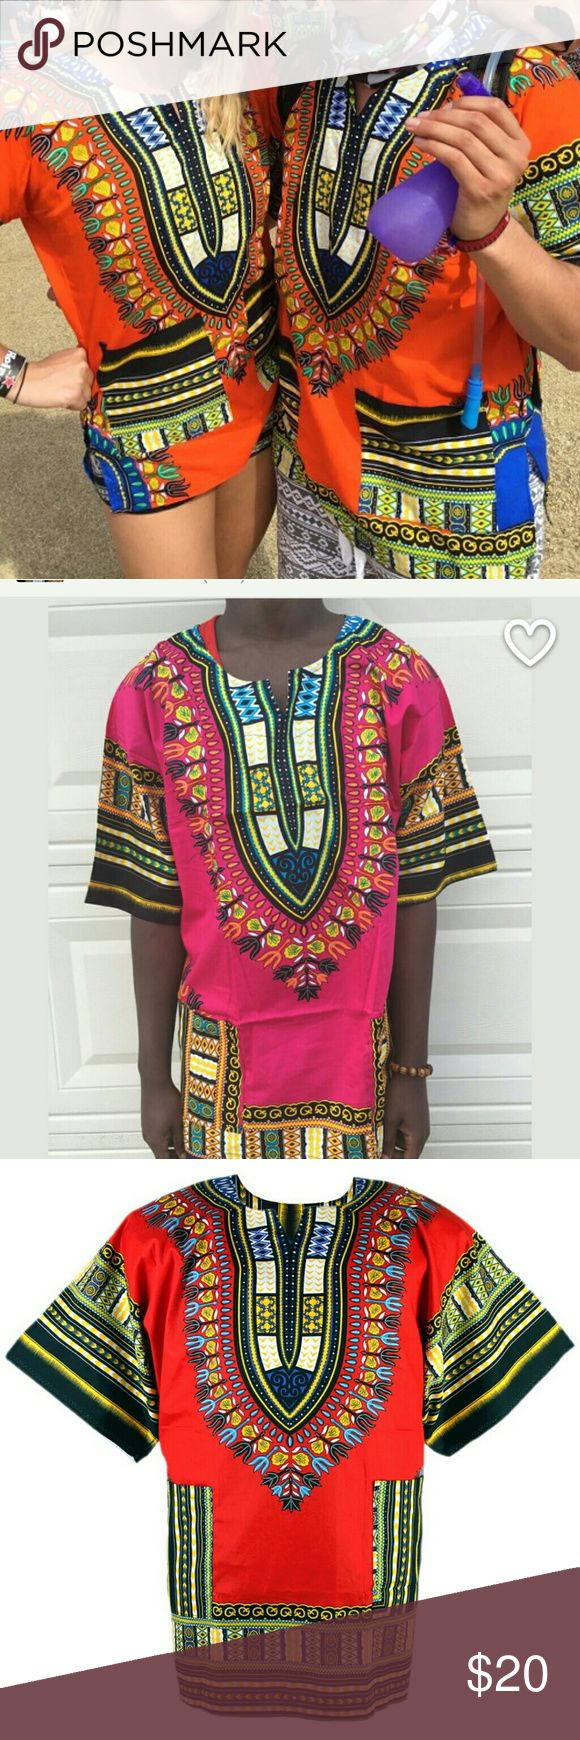 African Dashiki Shirt, Unisex, Cotton Shirt. African Dashiki Shirt.  Available colours are:       1Orange (S), 1 Pink (L), 1 Blue (L), 1Red(L),  1Green (L). Tops Blouses